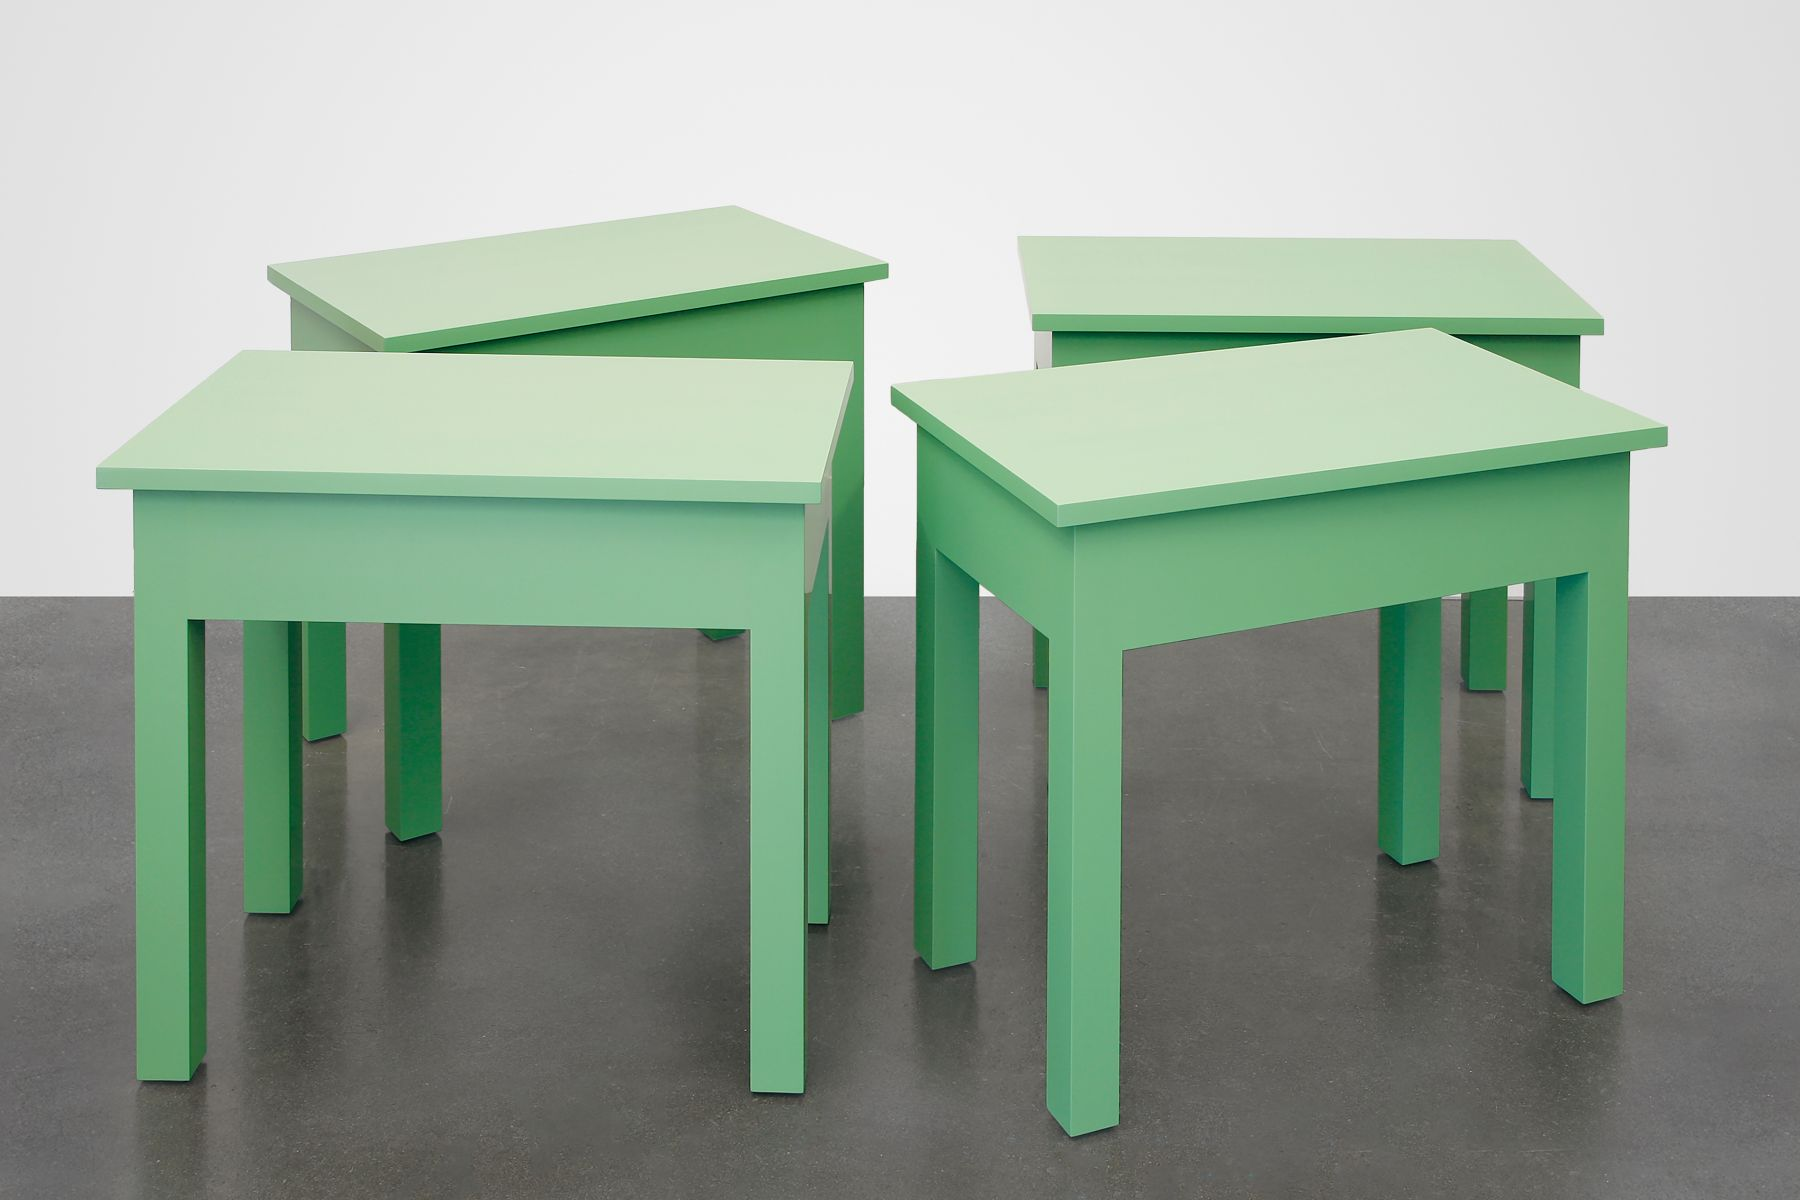 Four Green Tables (one to be used in my new home, one to be sold by a gallery and used as a table in the purchaser's home, one to be acquired by an Institution to be conserved in original condition, one to be donated anonymously to a thrift store), 2016, Enamel on eastern maple